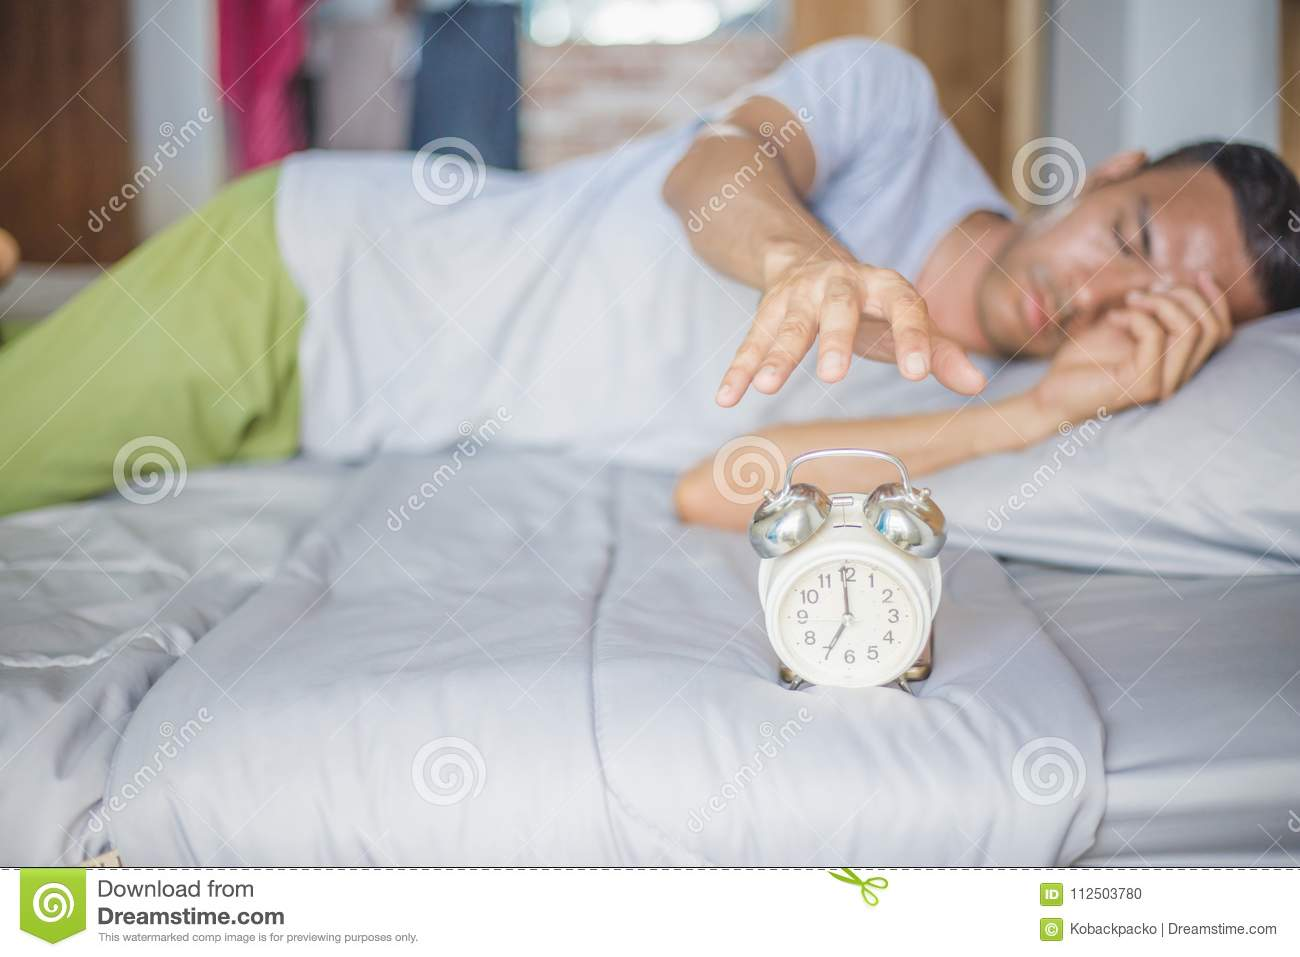 Alarm clock stock photo  Image of beautiful, adult, alarm